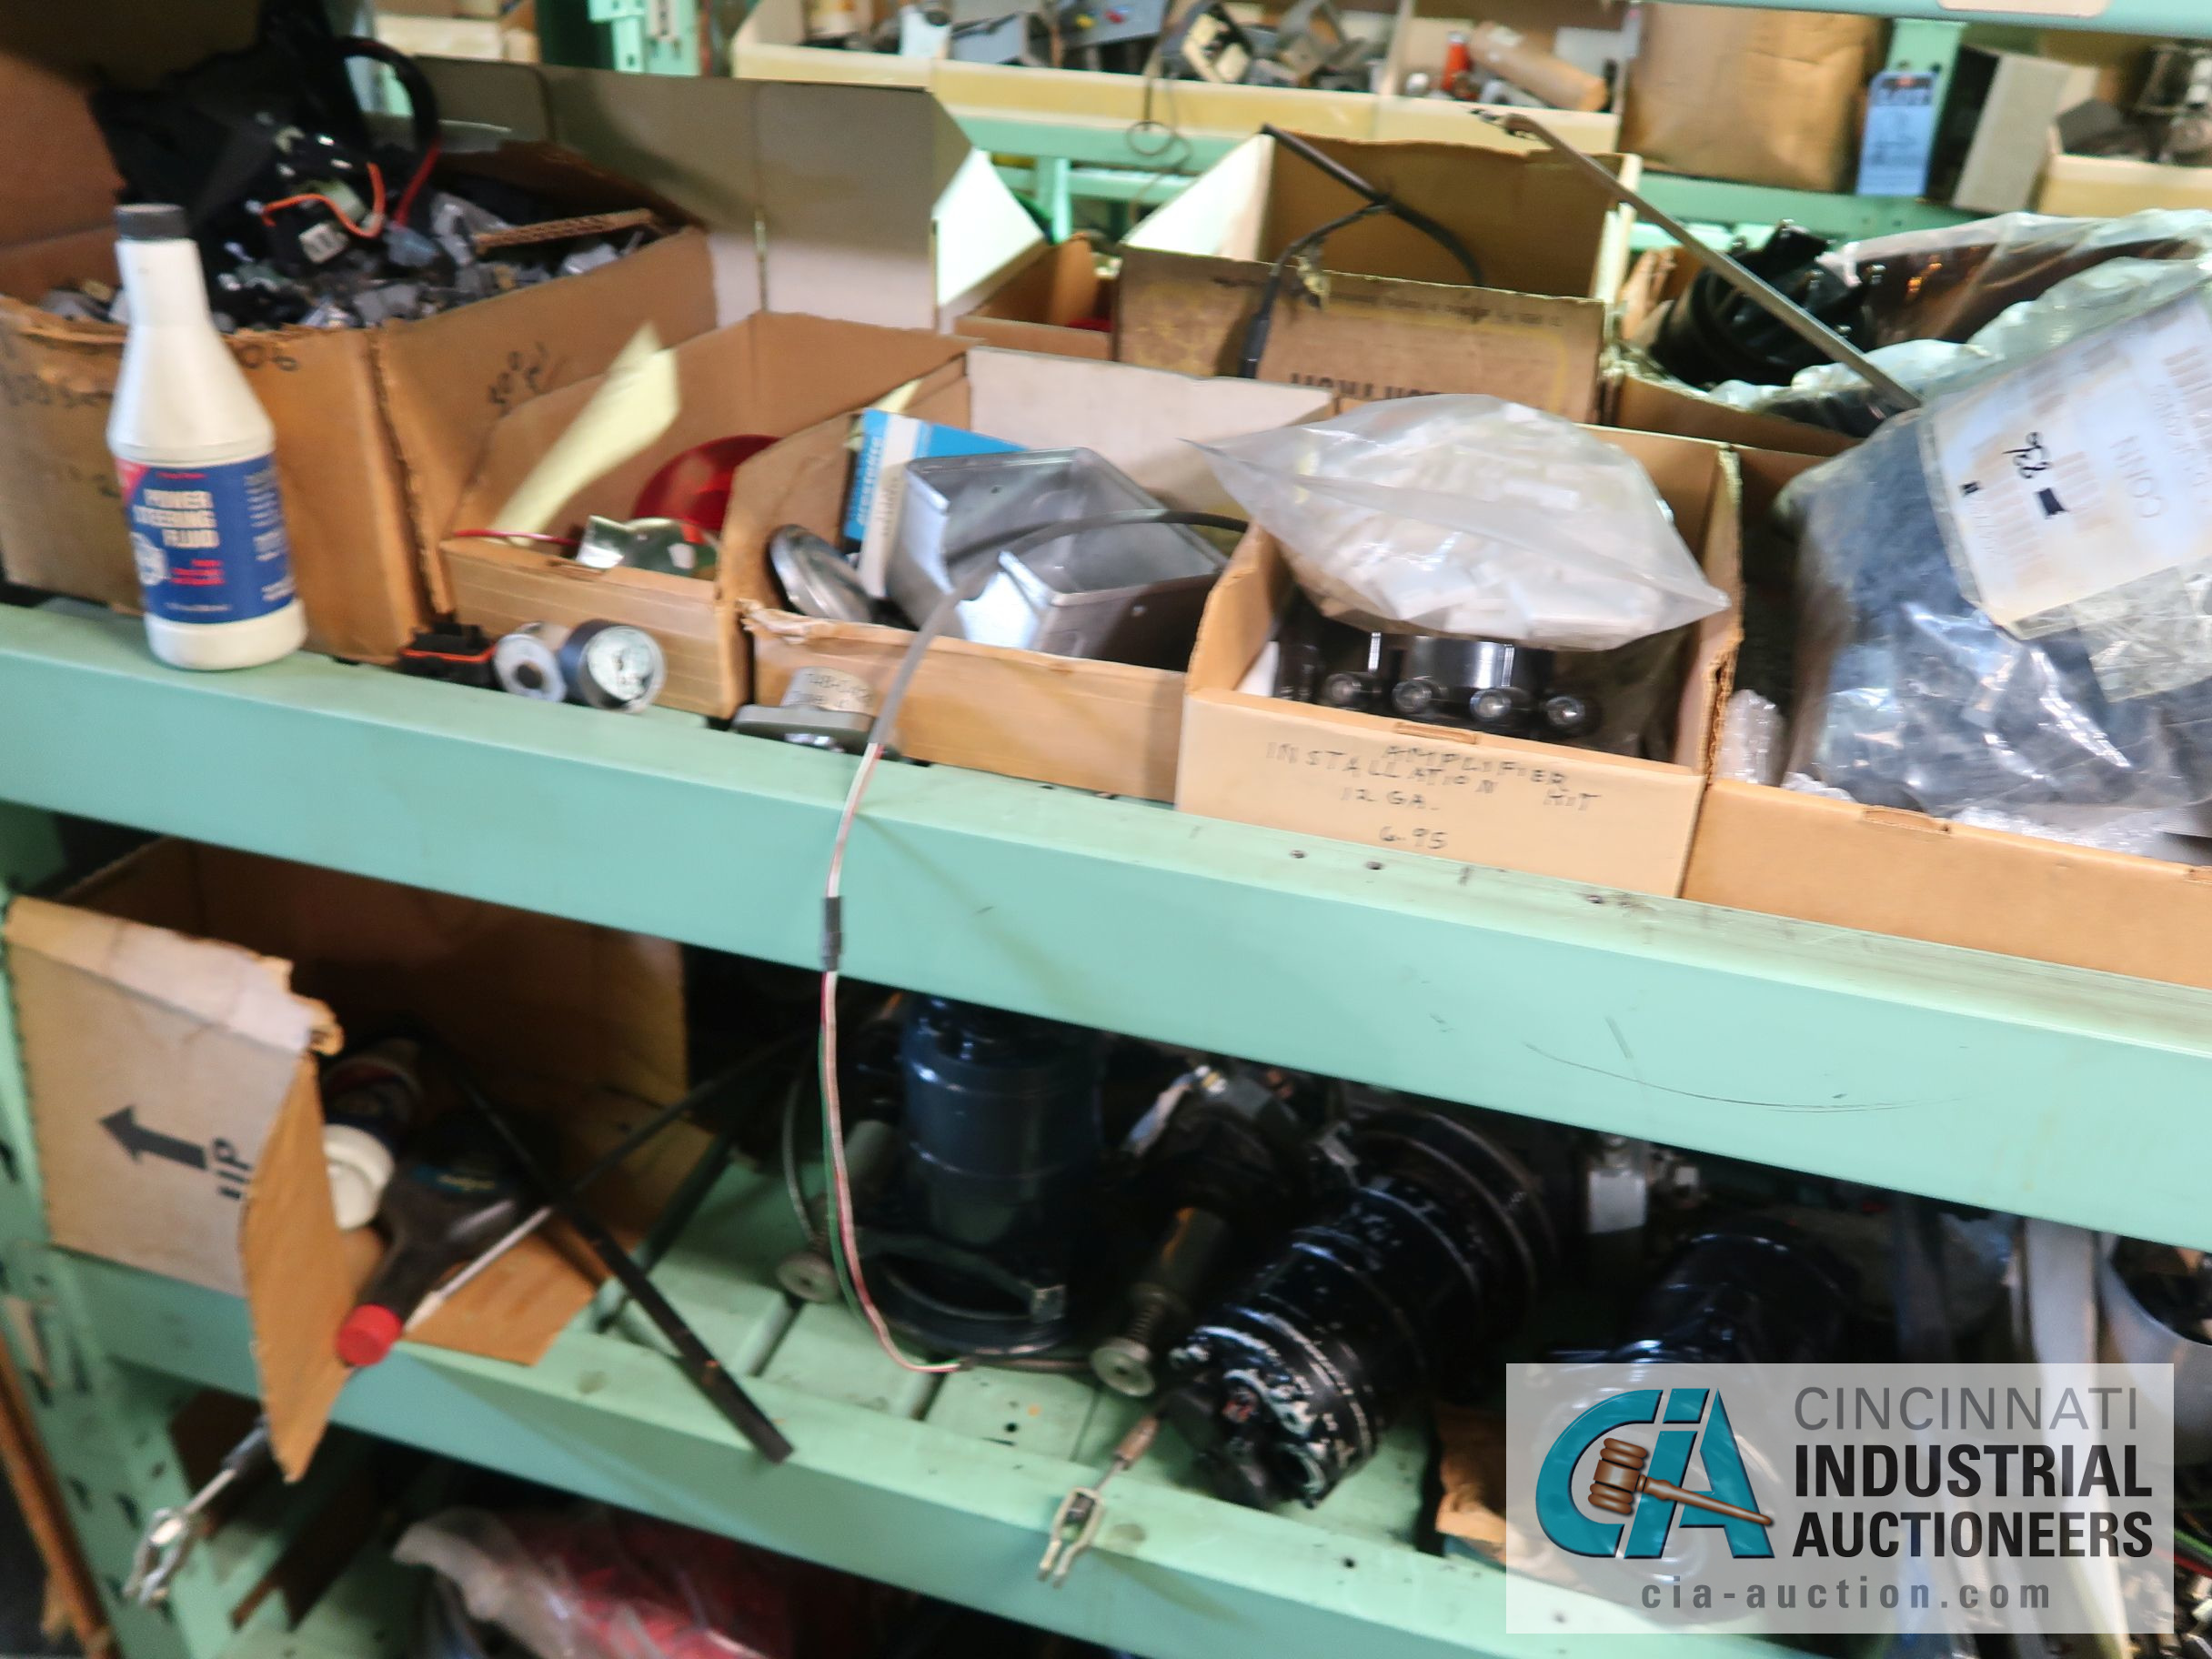 CONTENTS OF (5) RACKS INCLUDING MISCELLANEOUS AUTOMOTIVE PARTS, LIGHTS, FILTERS, ENGINE PARTS, RIMS, - Image 23 of 29